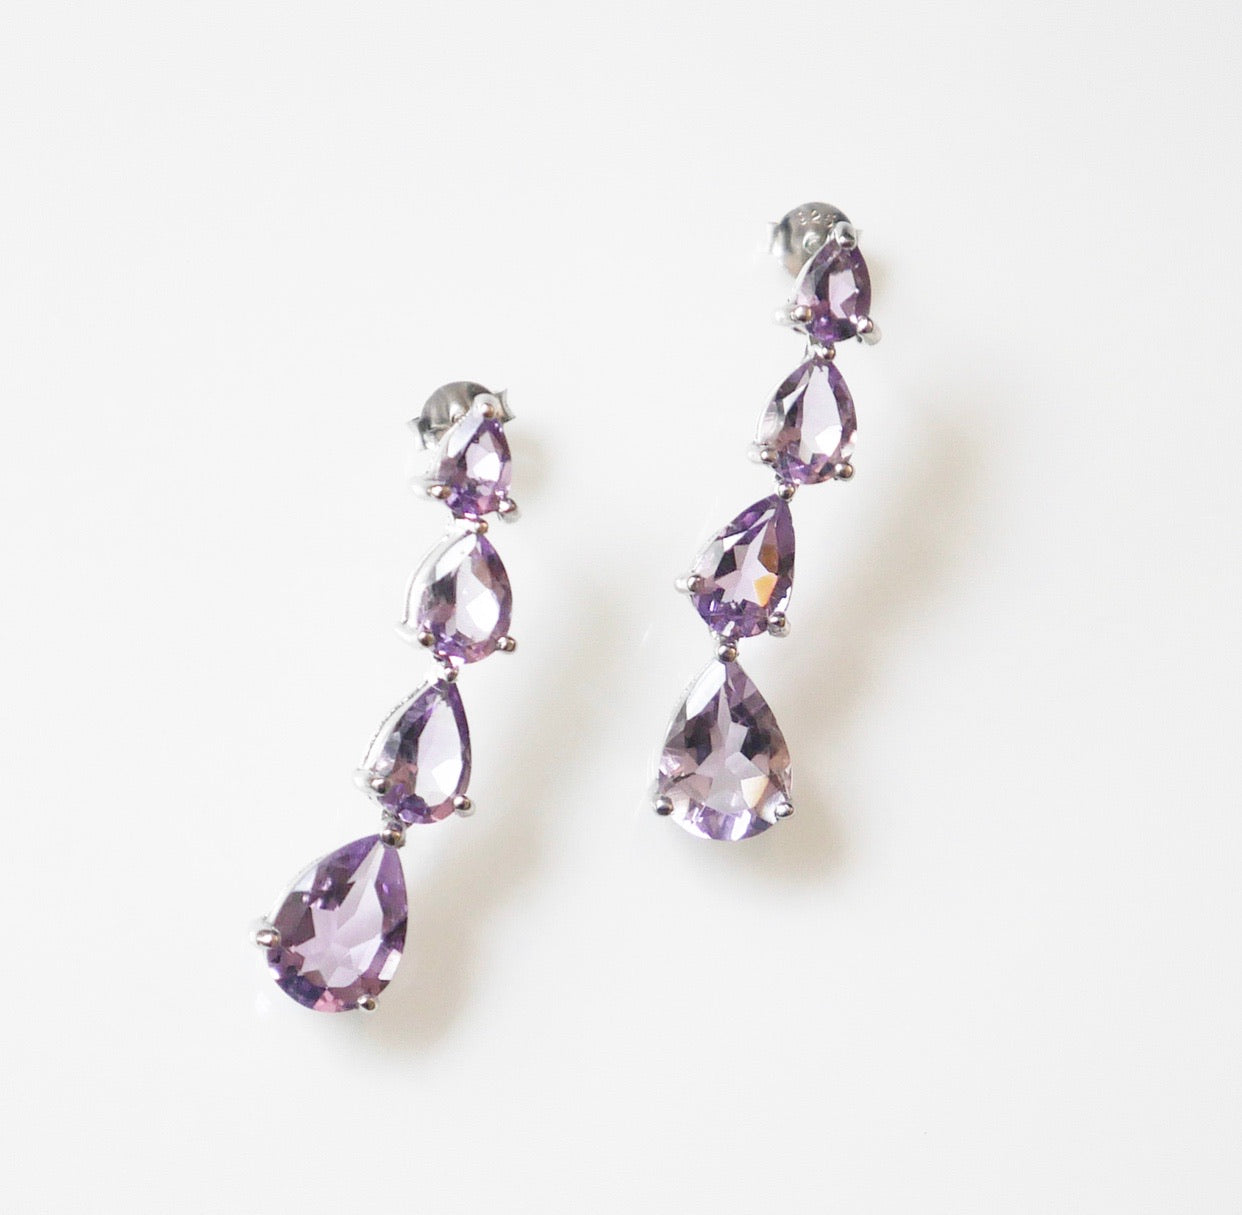 Amethyst drop earrings tear drop amethyst earrings amethyst earrings for event cocktail amethyst earrings, wedding amethyst earrings Kesleyboutique.com, girlwithjobs.com